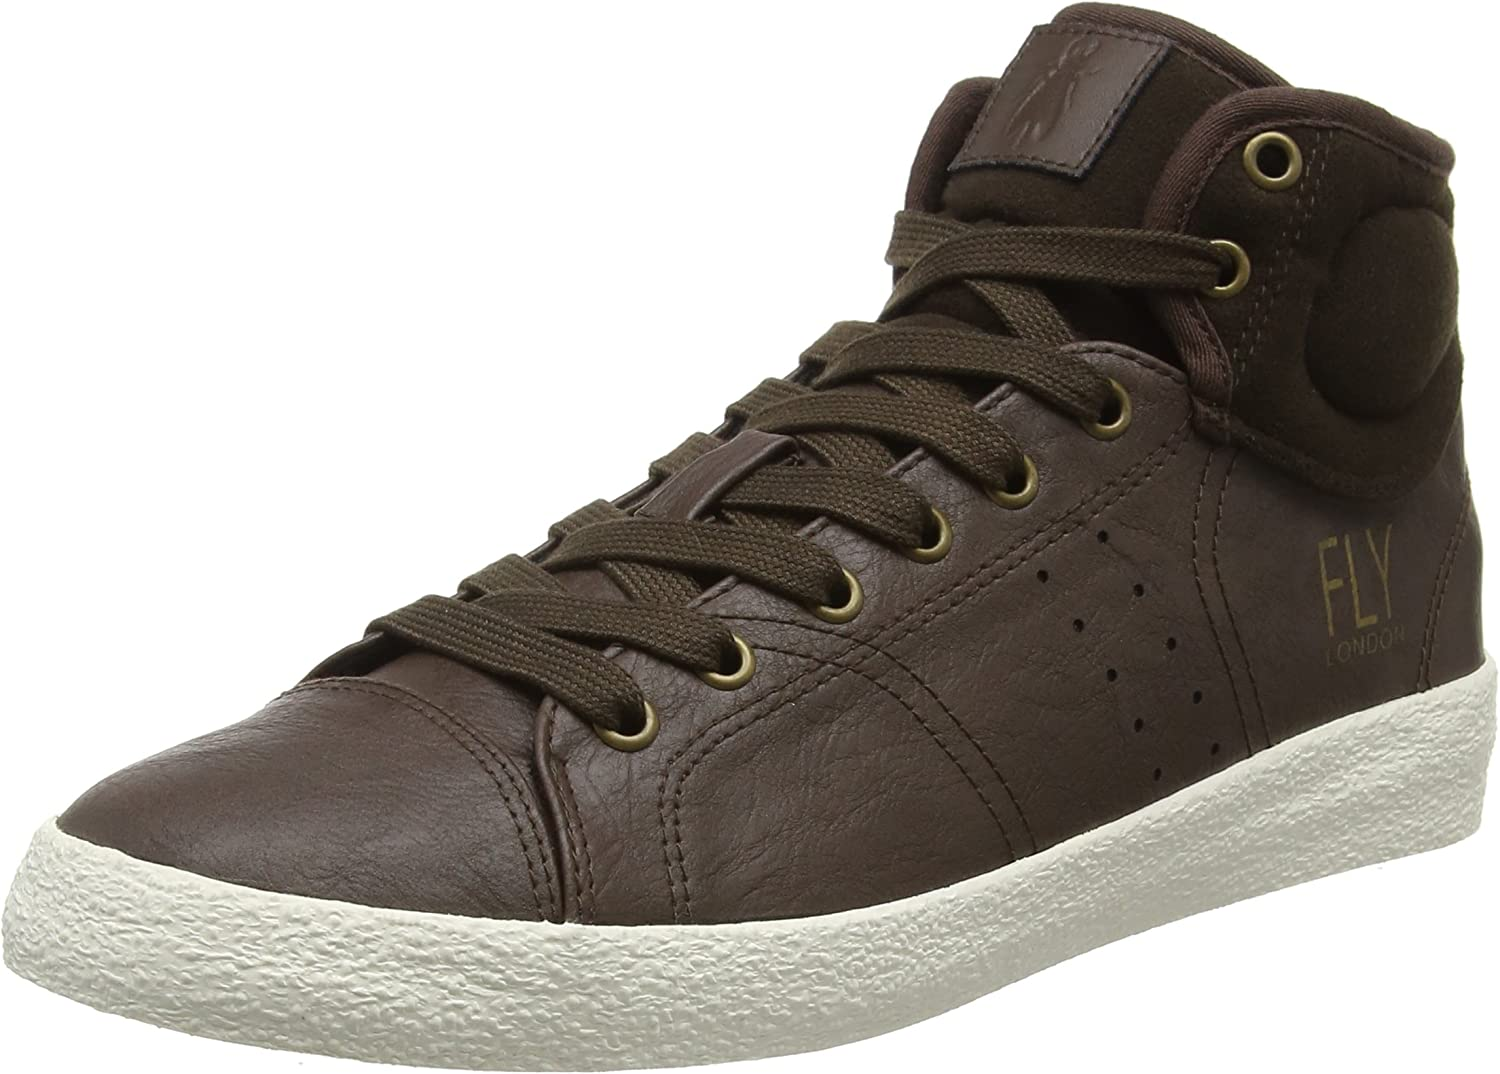 Fly London Men's Balk837fly Trainers